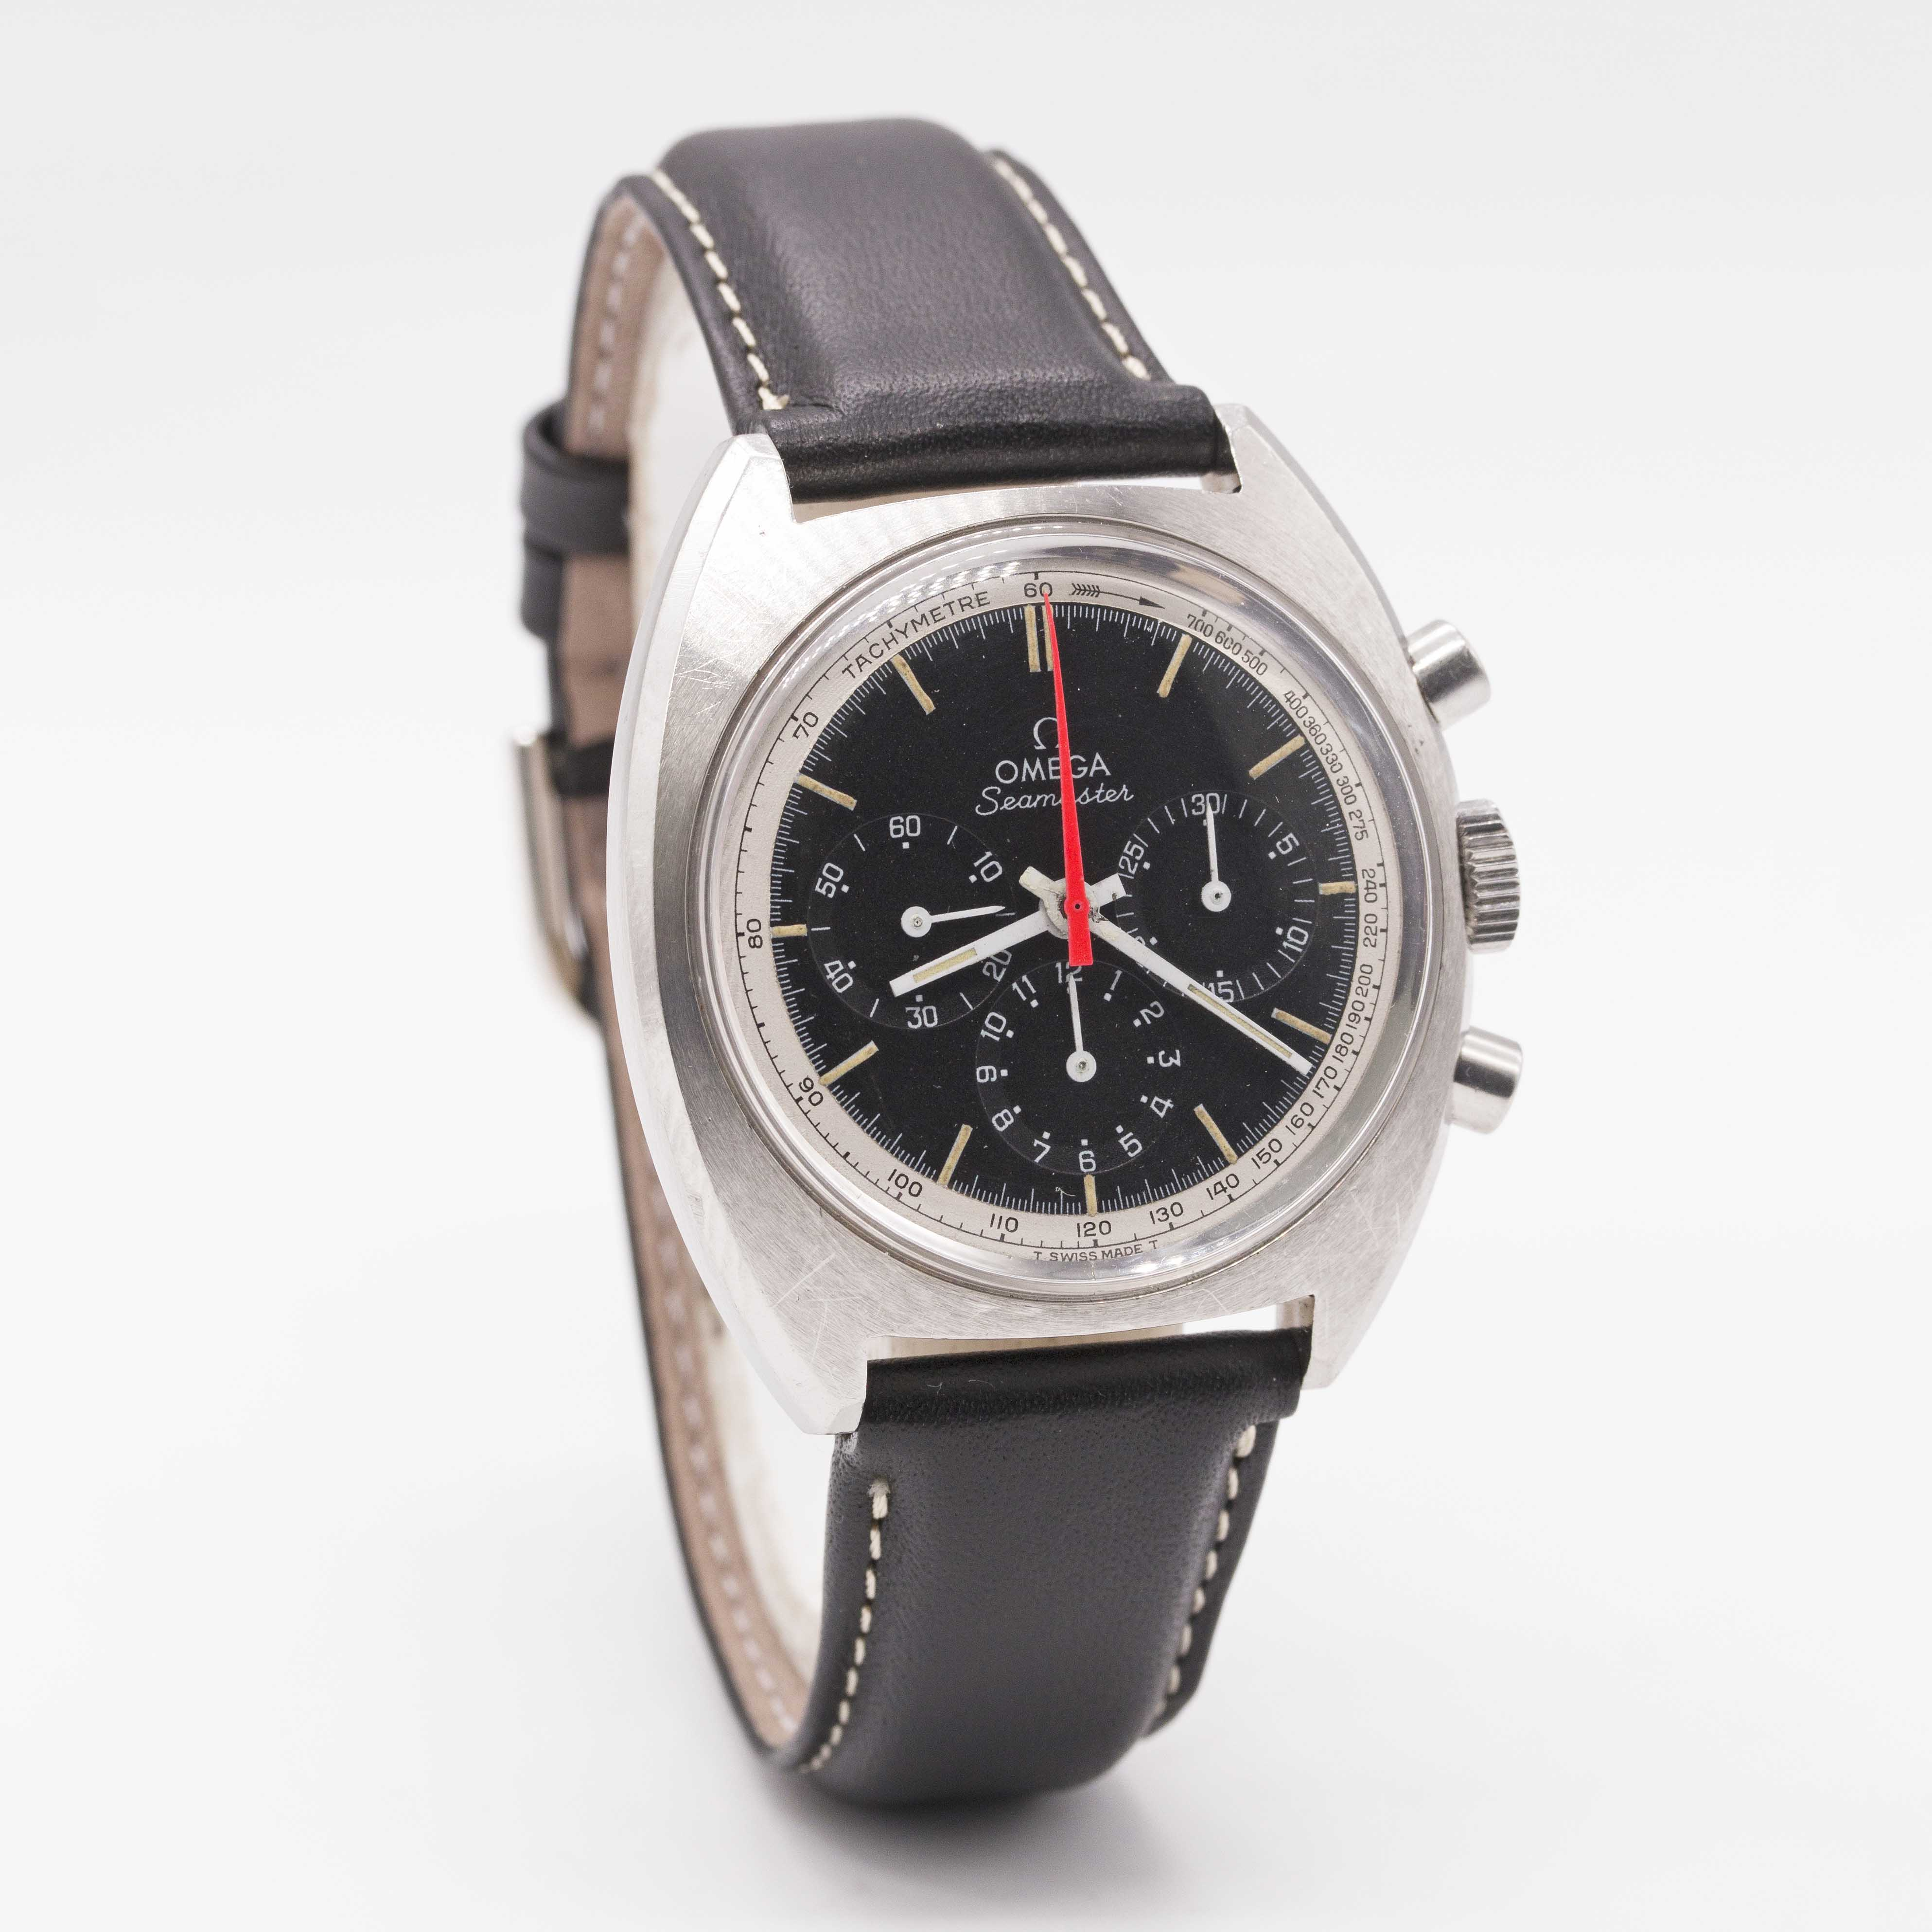 Lot 16 - A GENTLEMAN'S STAINLESS STEEL OMEGA SEAMASTER CHRONOGRAPH WRIST WATCH CIRCA 1967, REF. 145.006-66